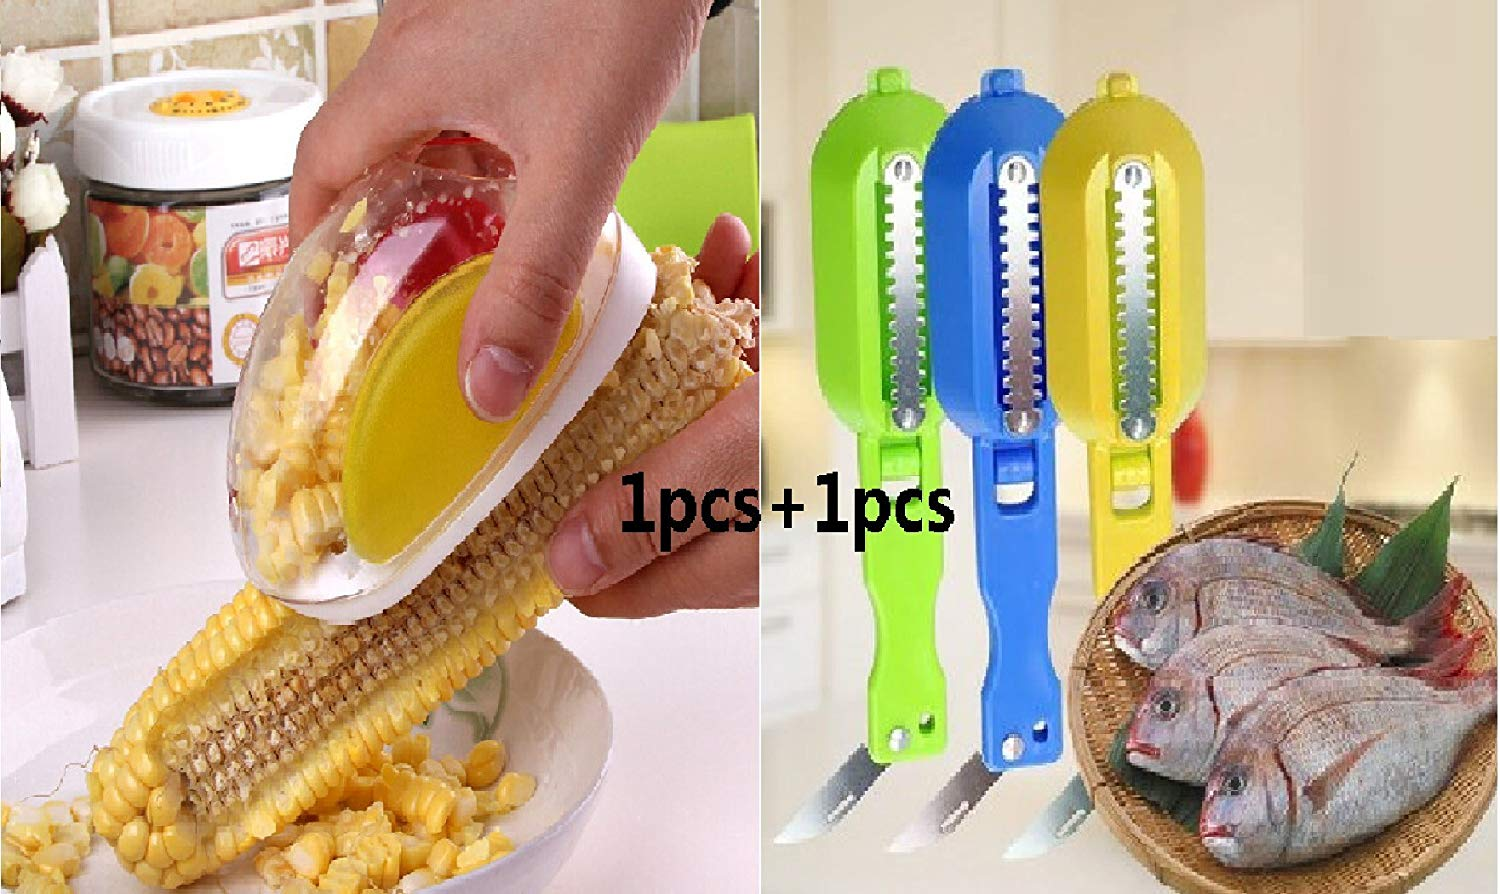 Rainbow - Ye Creative corn planter, corn thresher, corn husk, with Stainless Steel Blades and Hand Protector Cooking Tools (1pcs) + fish scraper, scale remover (1pcs).